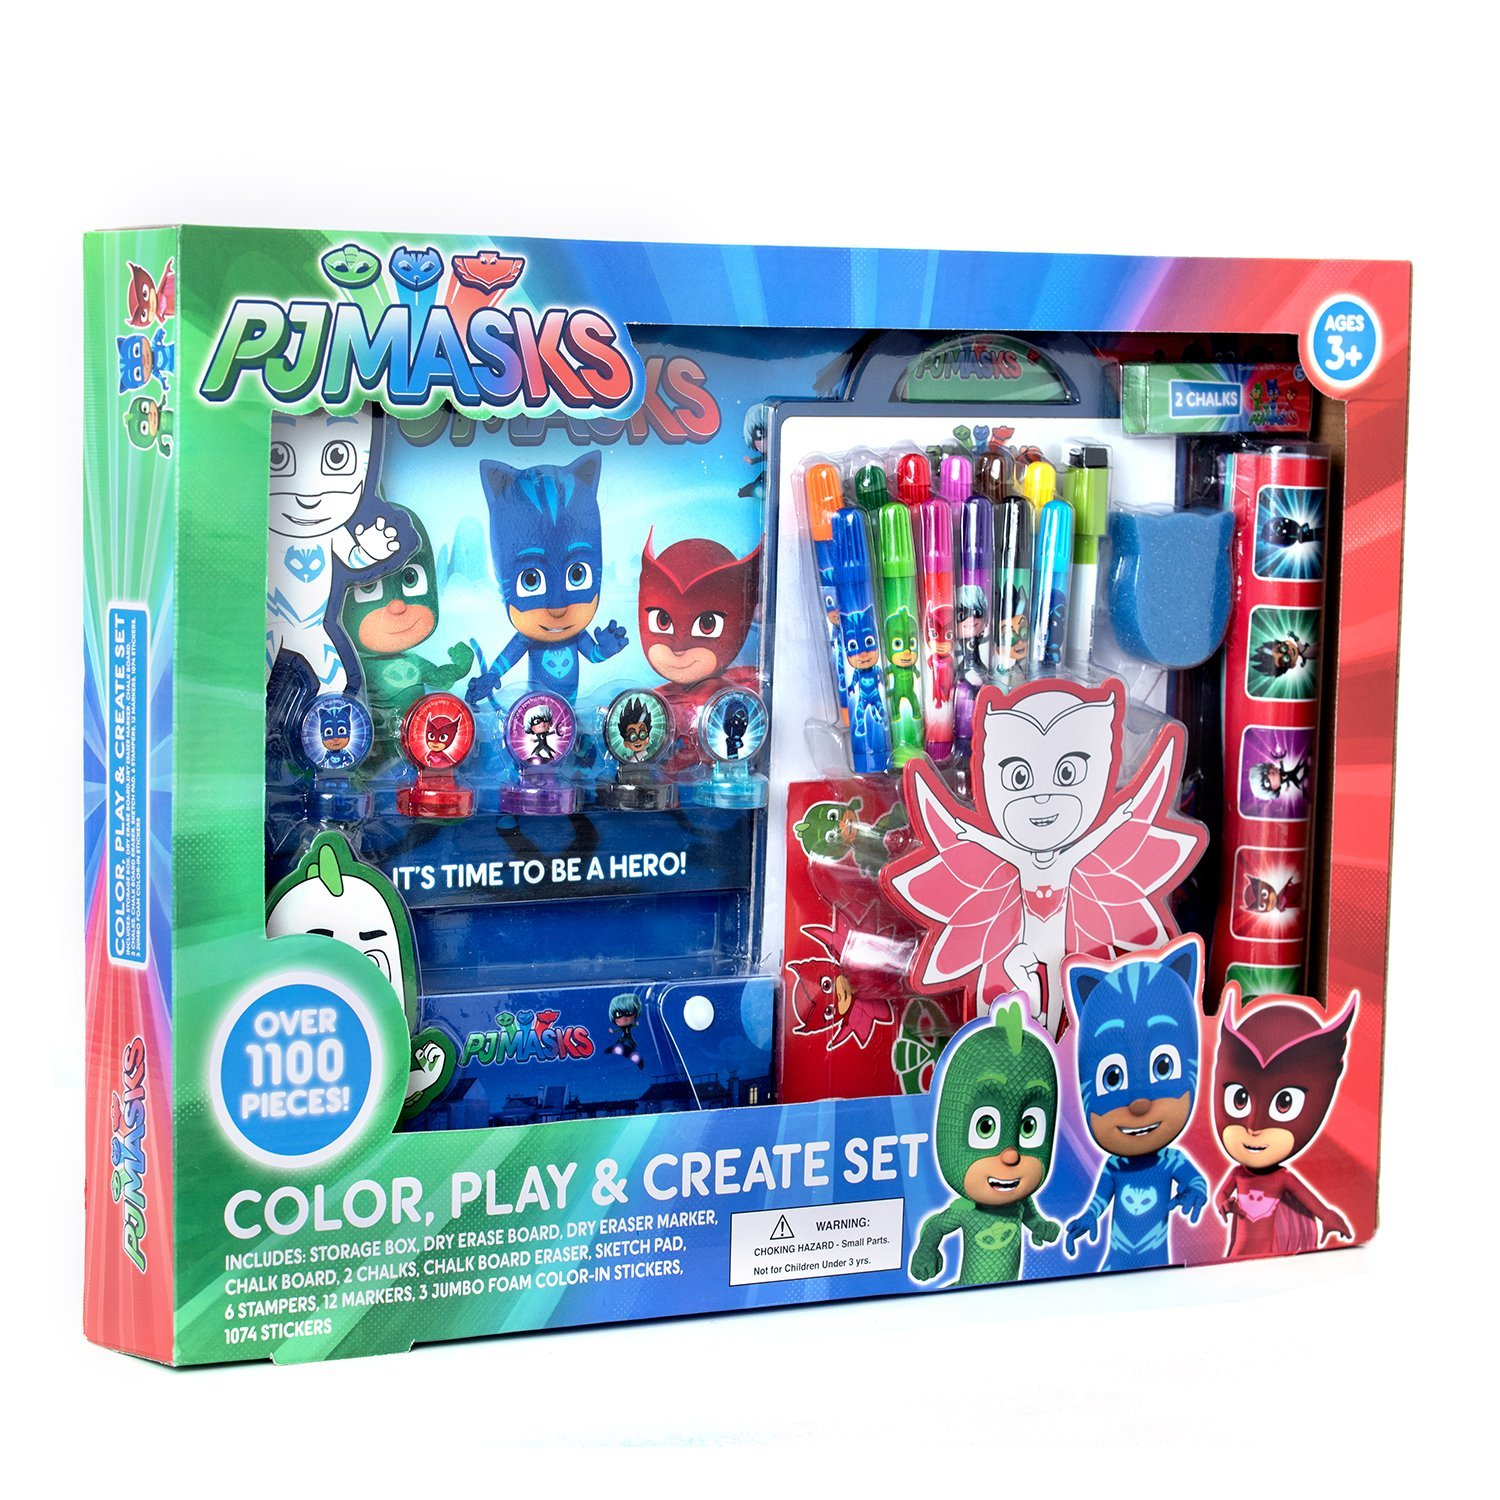 Pj Masks Color Play Create Art Set Fun And Creative Learning The Colorplay Engage Your Child Into An Enjoyable Productive Experience As He Hones